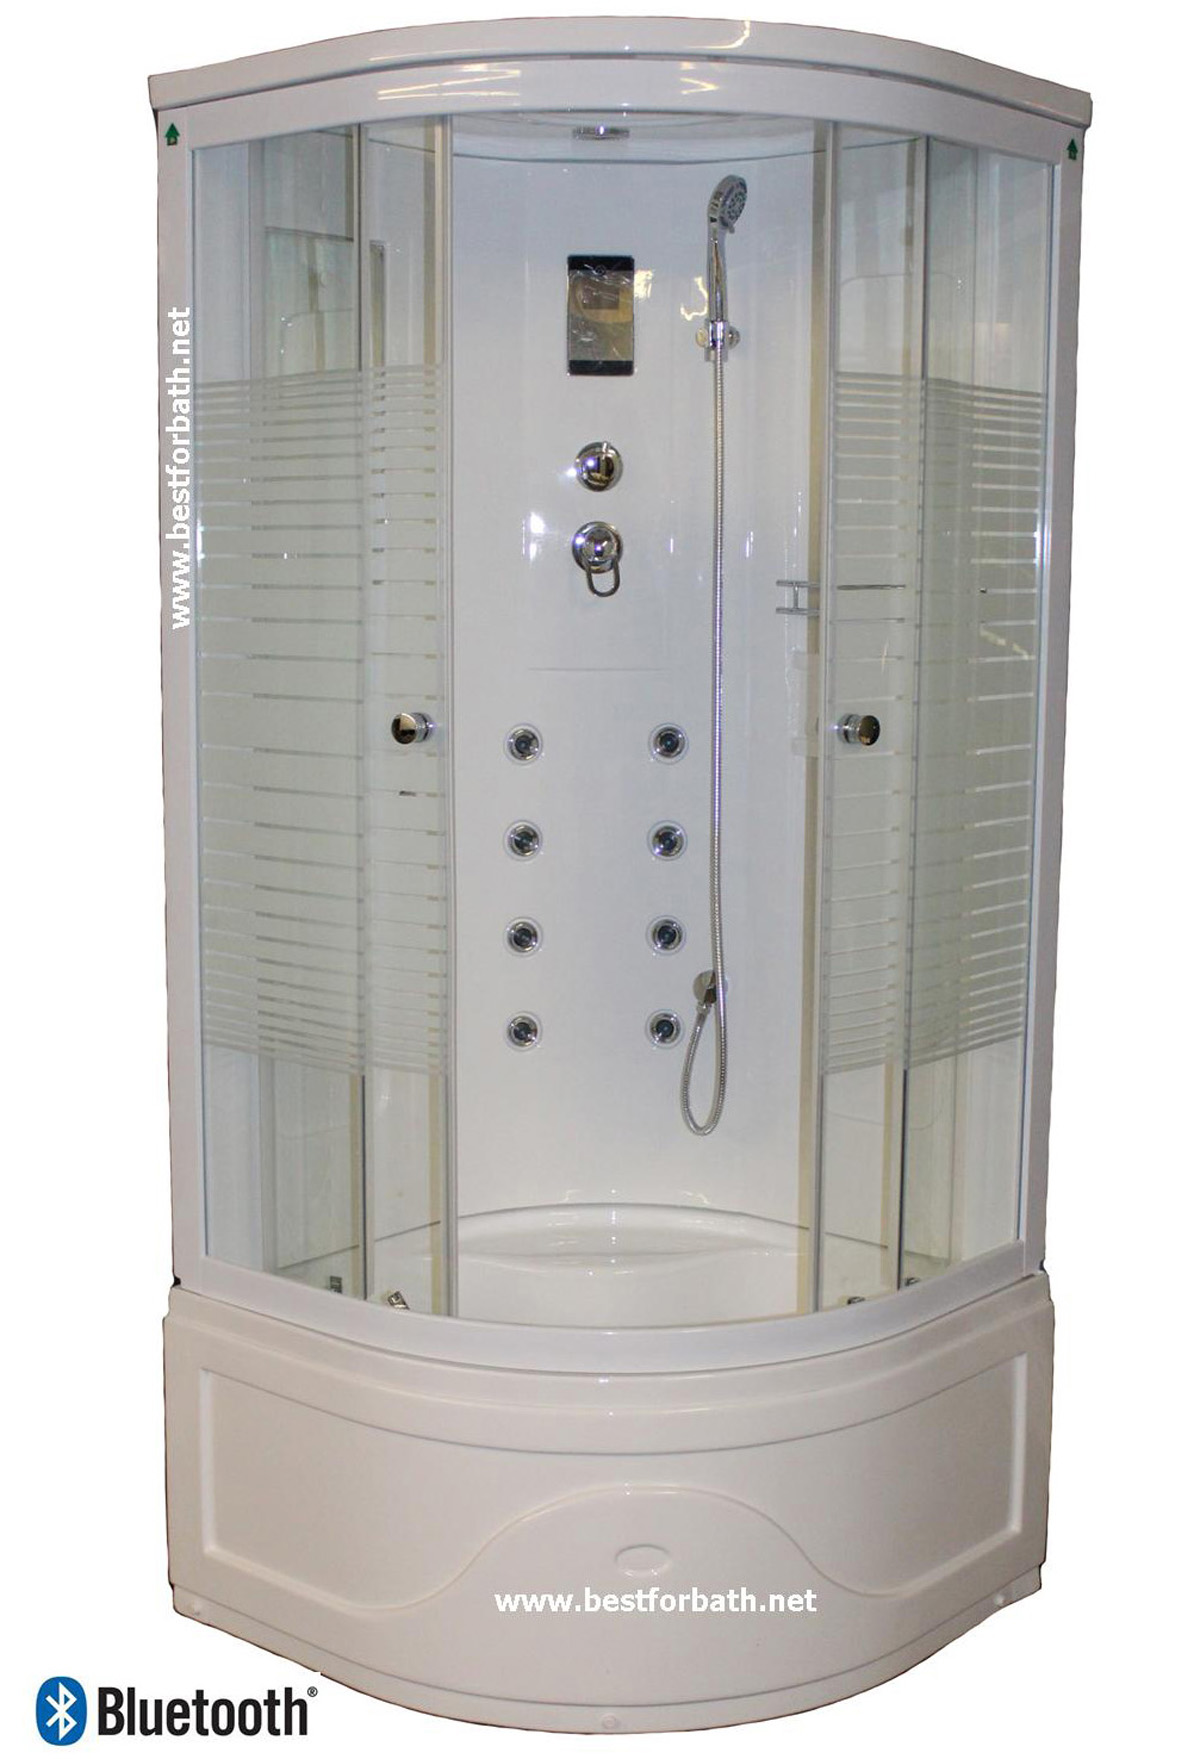 Shower Cabin.Hydrotherapy,Bluetooth Audio. 8128 - Image 1